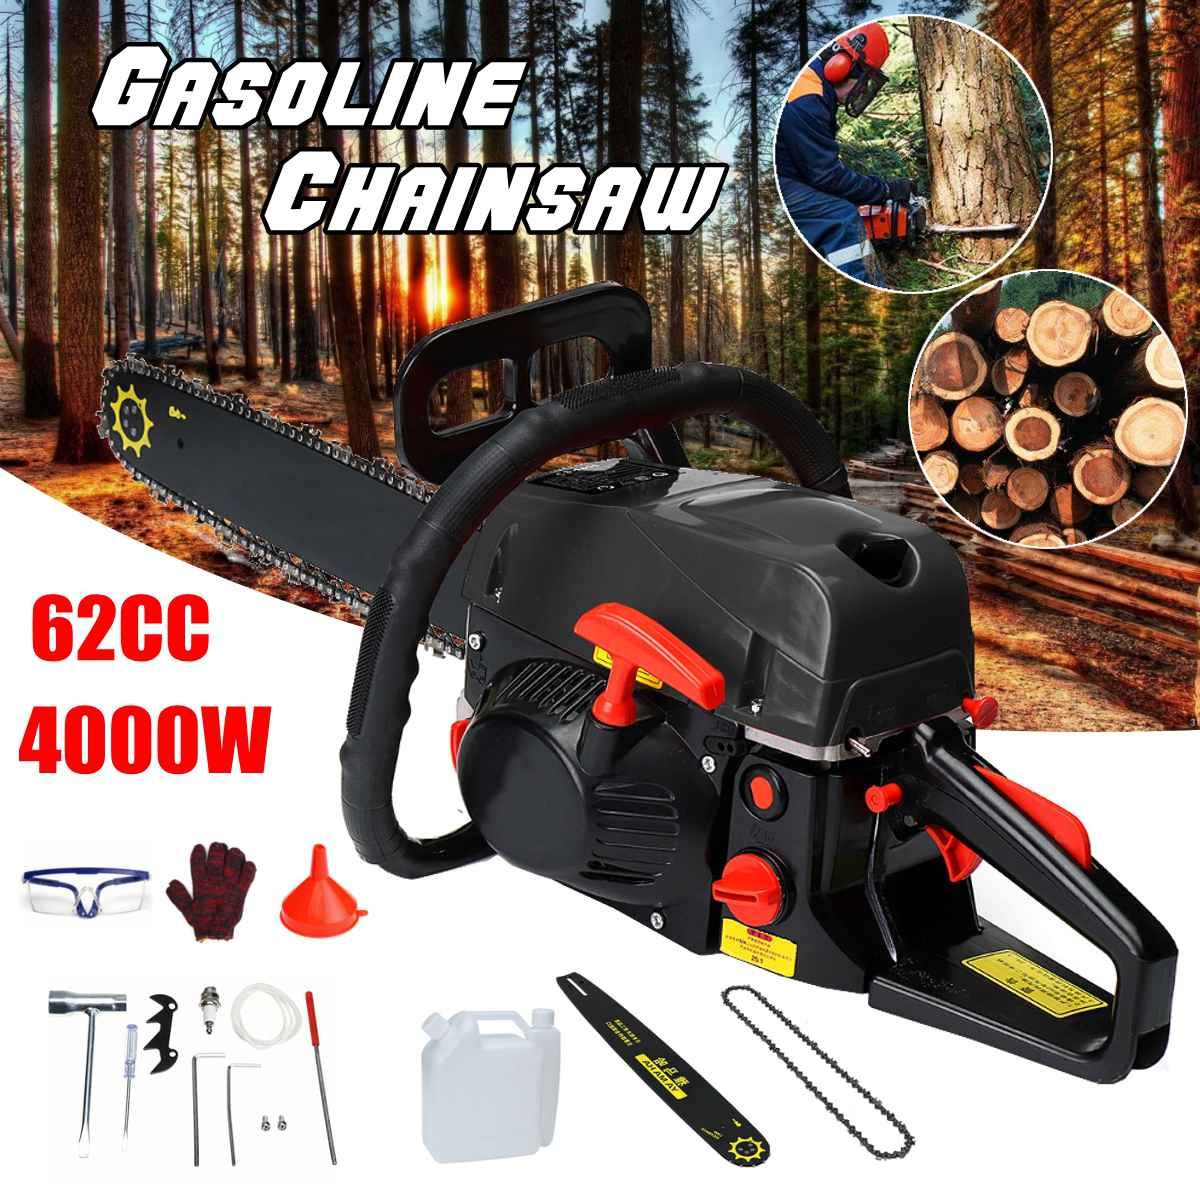 Professional Chainsaw 20 4200W Bar Gas Gasoline Powered Chainsaw 62cc Engine Cycle Chain SawProfessional Chainsaw 20 4200W Bar Gas Gasoline Powered Chainsaw 62cc Engine Cycle Chain Saw